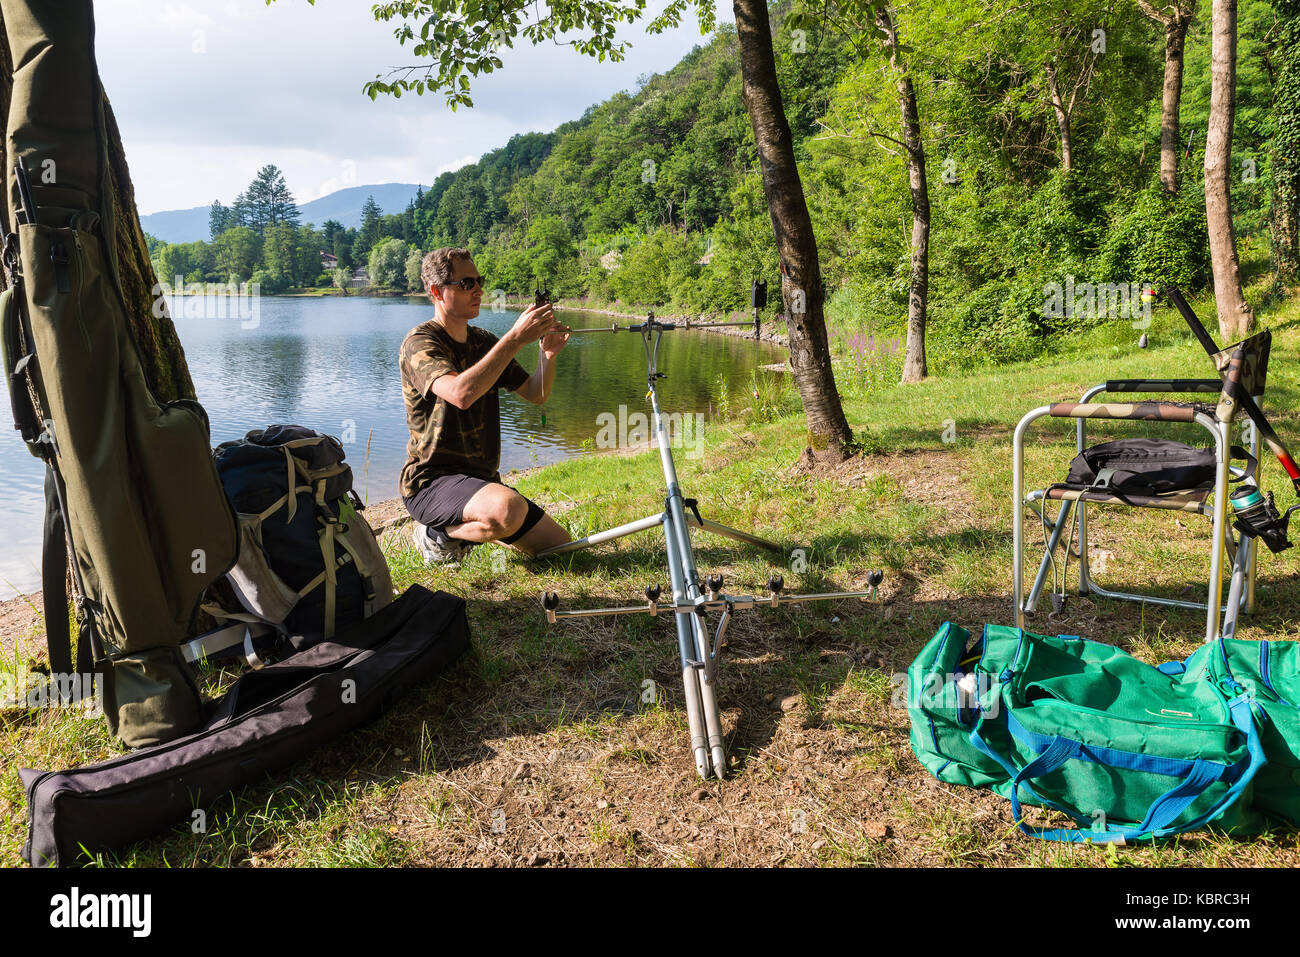 Fishing adventures, carp fishing. Angler with camouflage t-shirt, is fishing with carpfishing technique in freshwater. - Stock Image